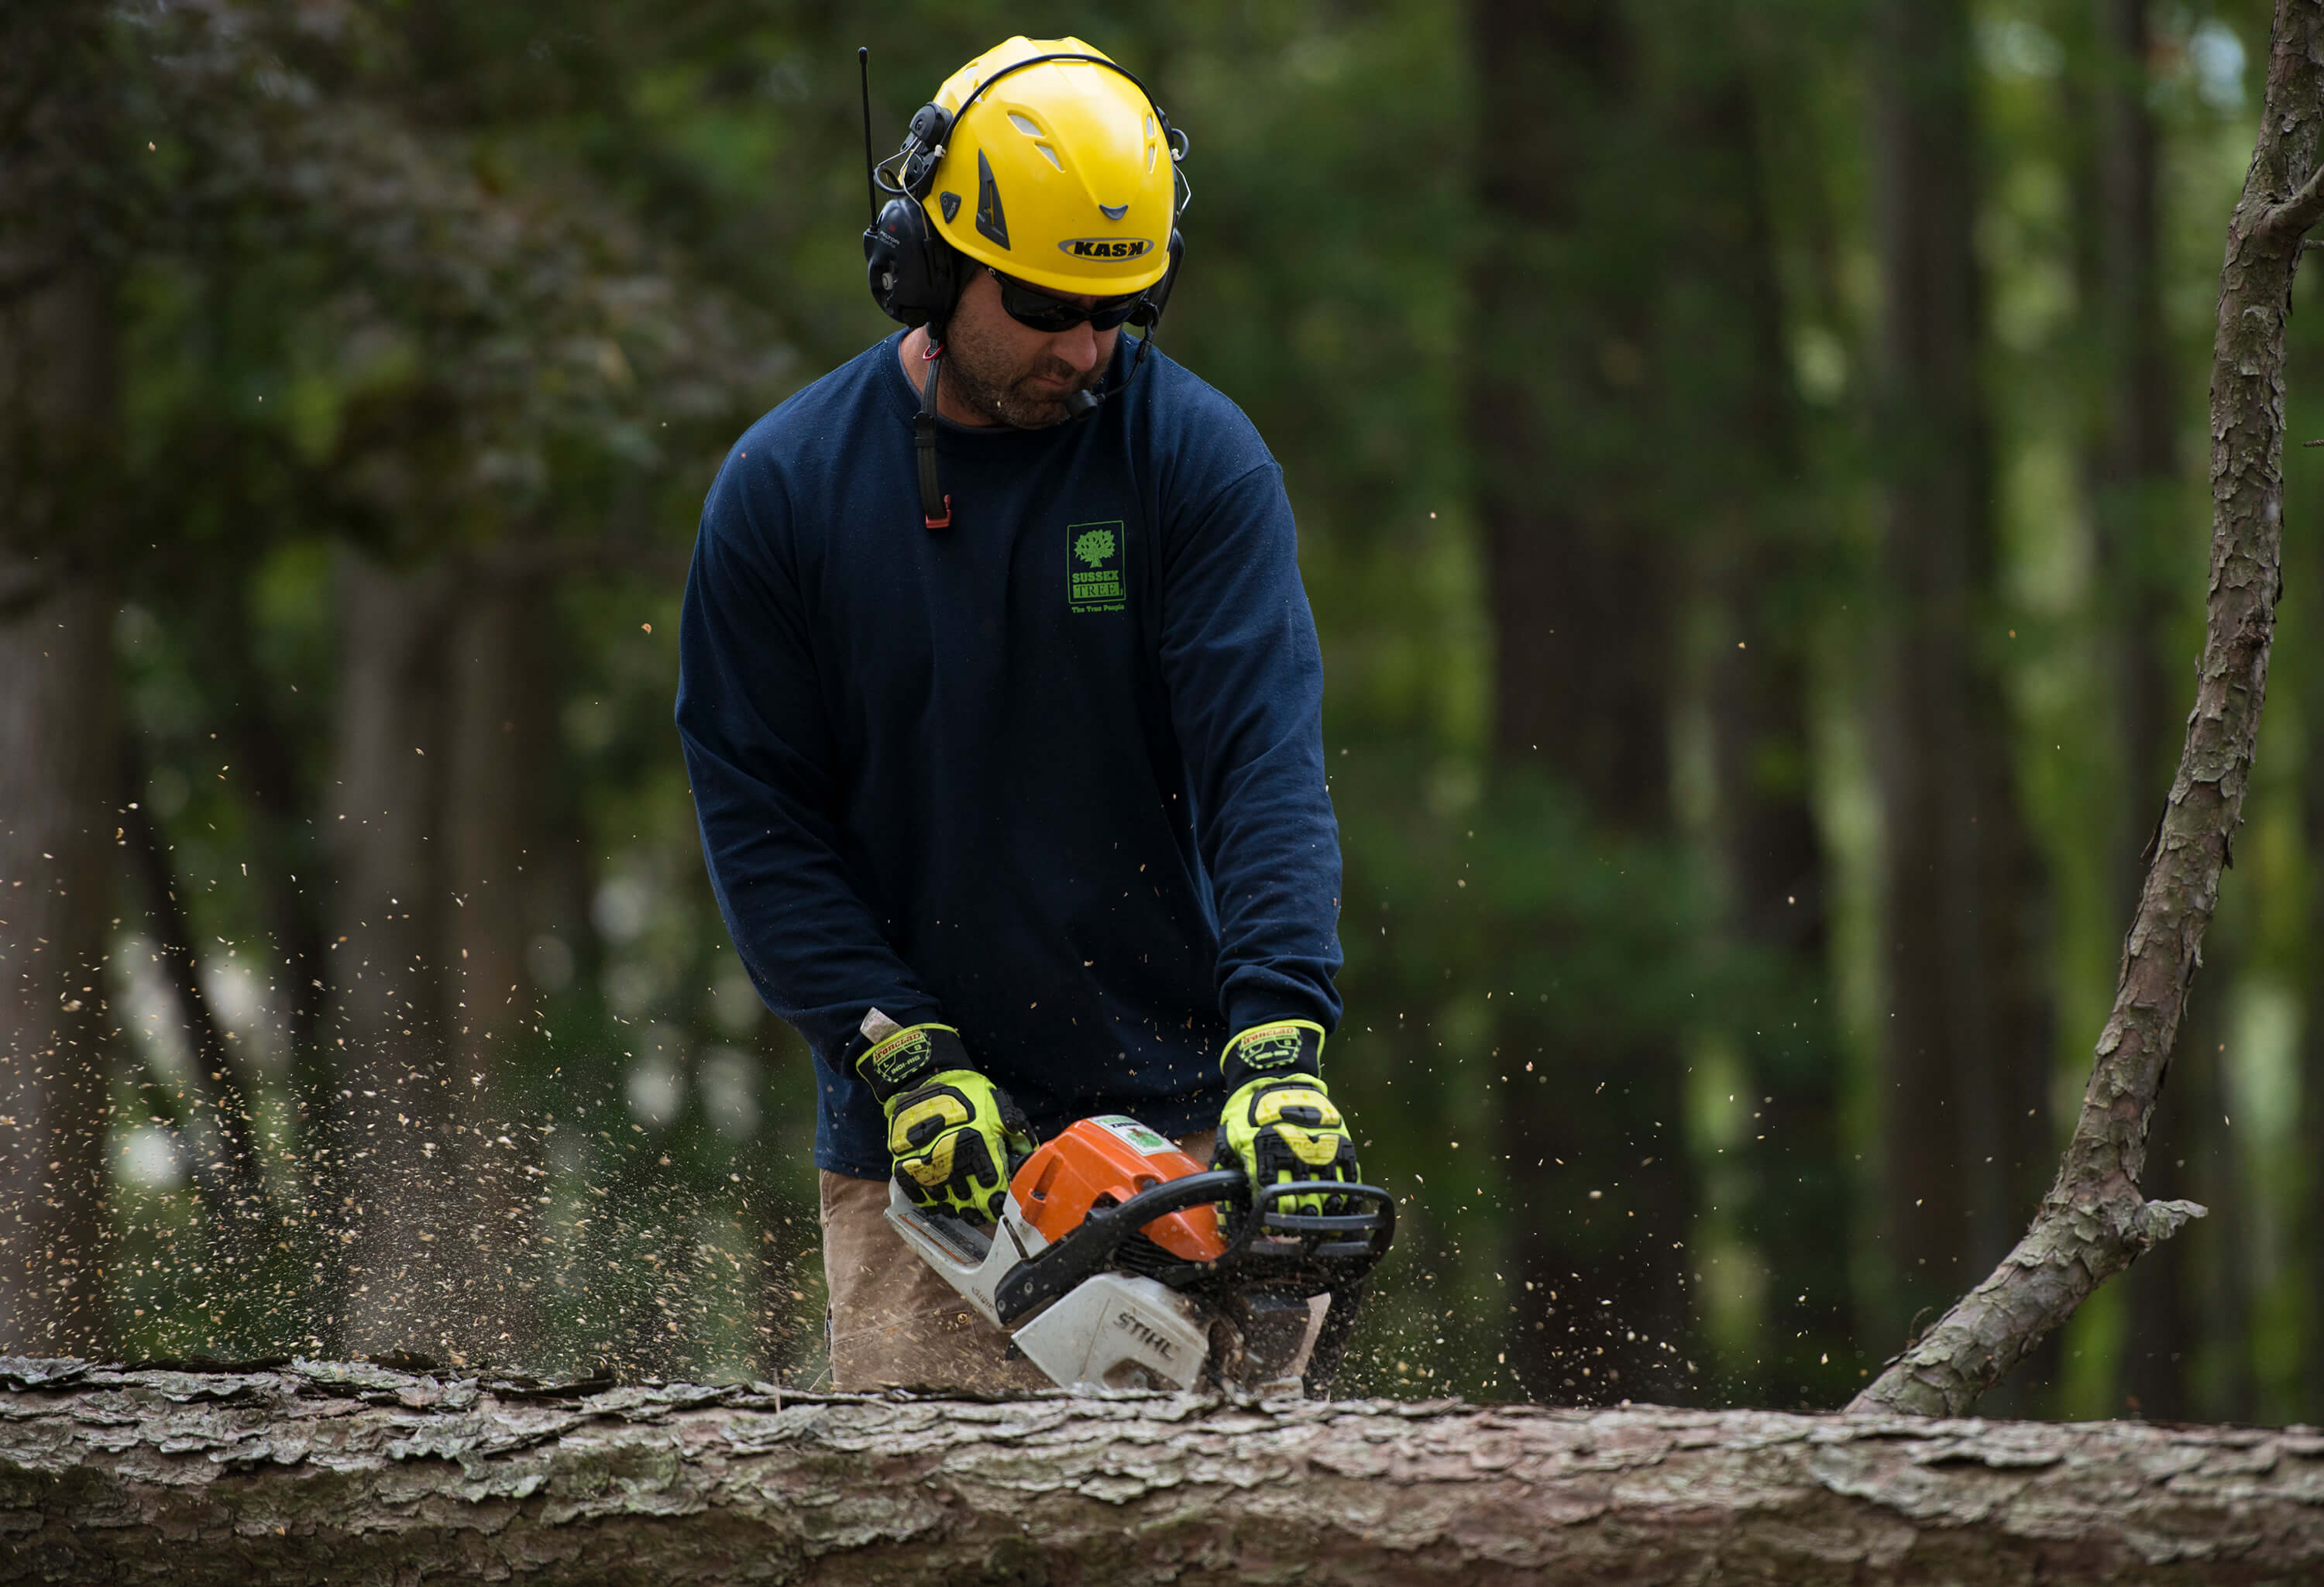 Chainsawing a downed tree